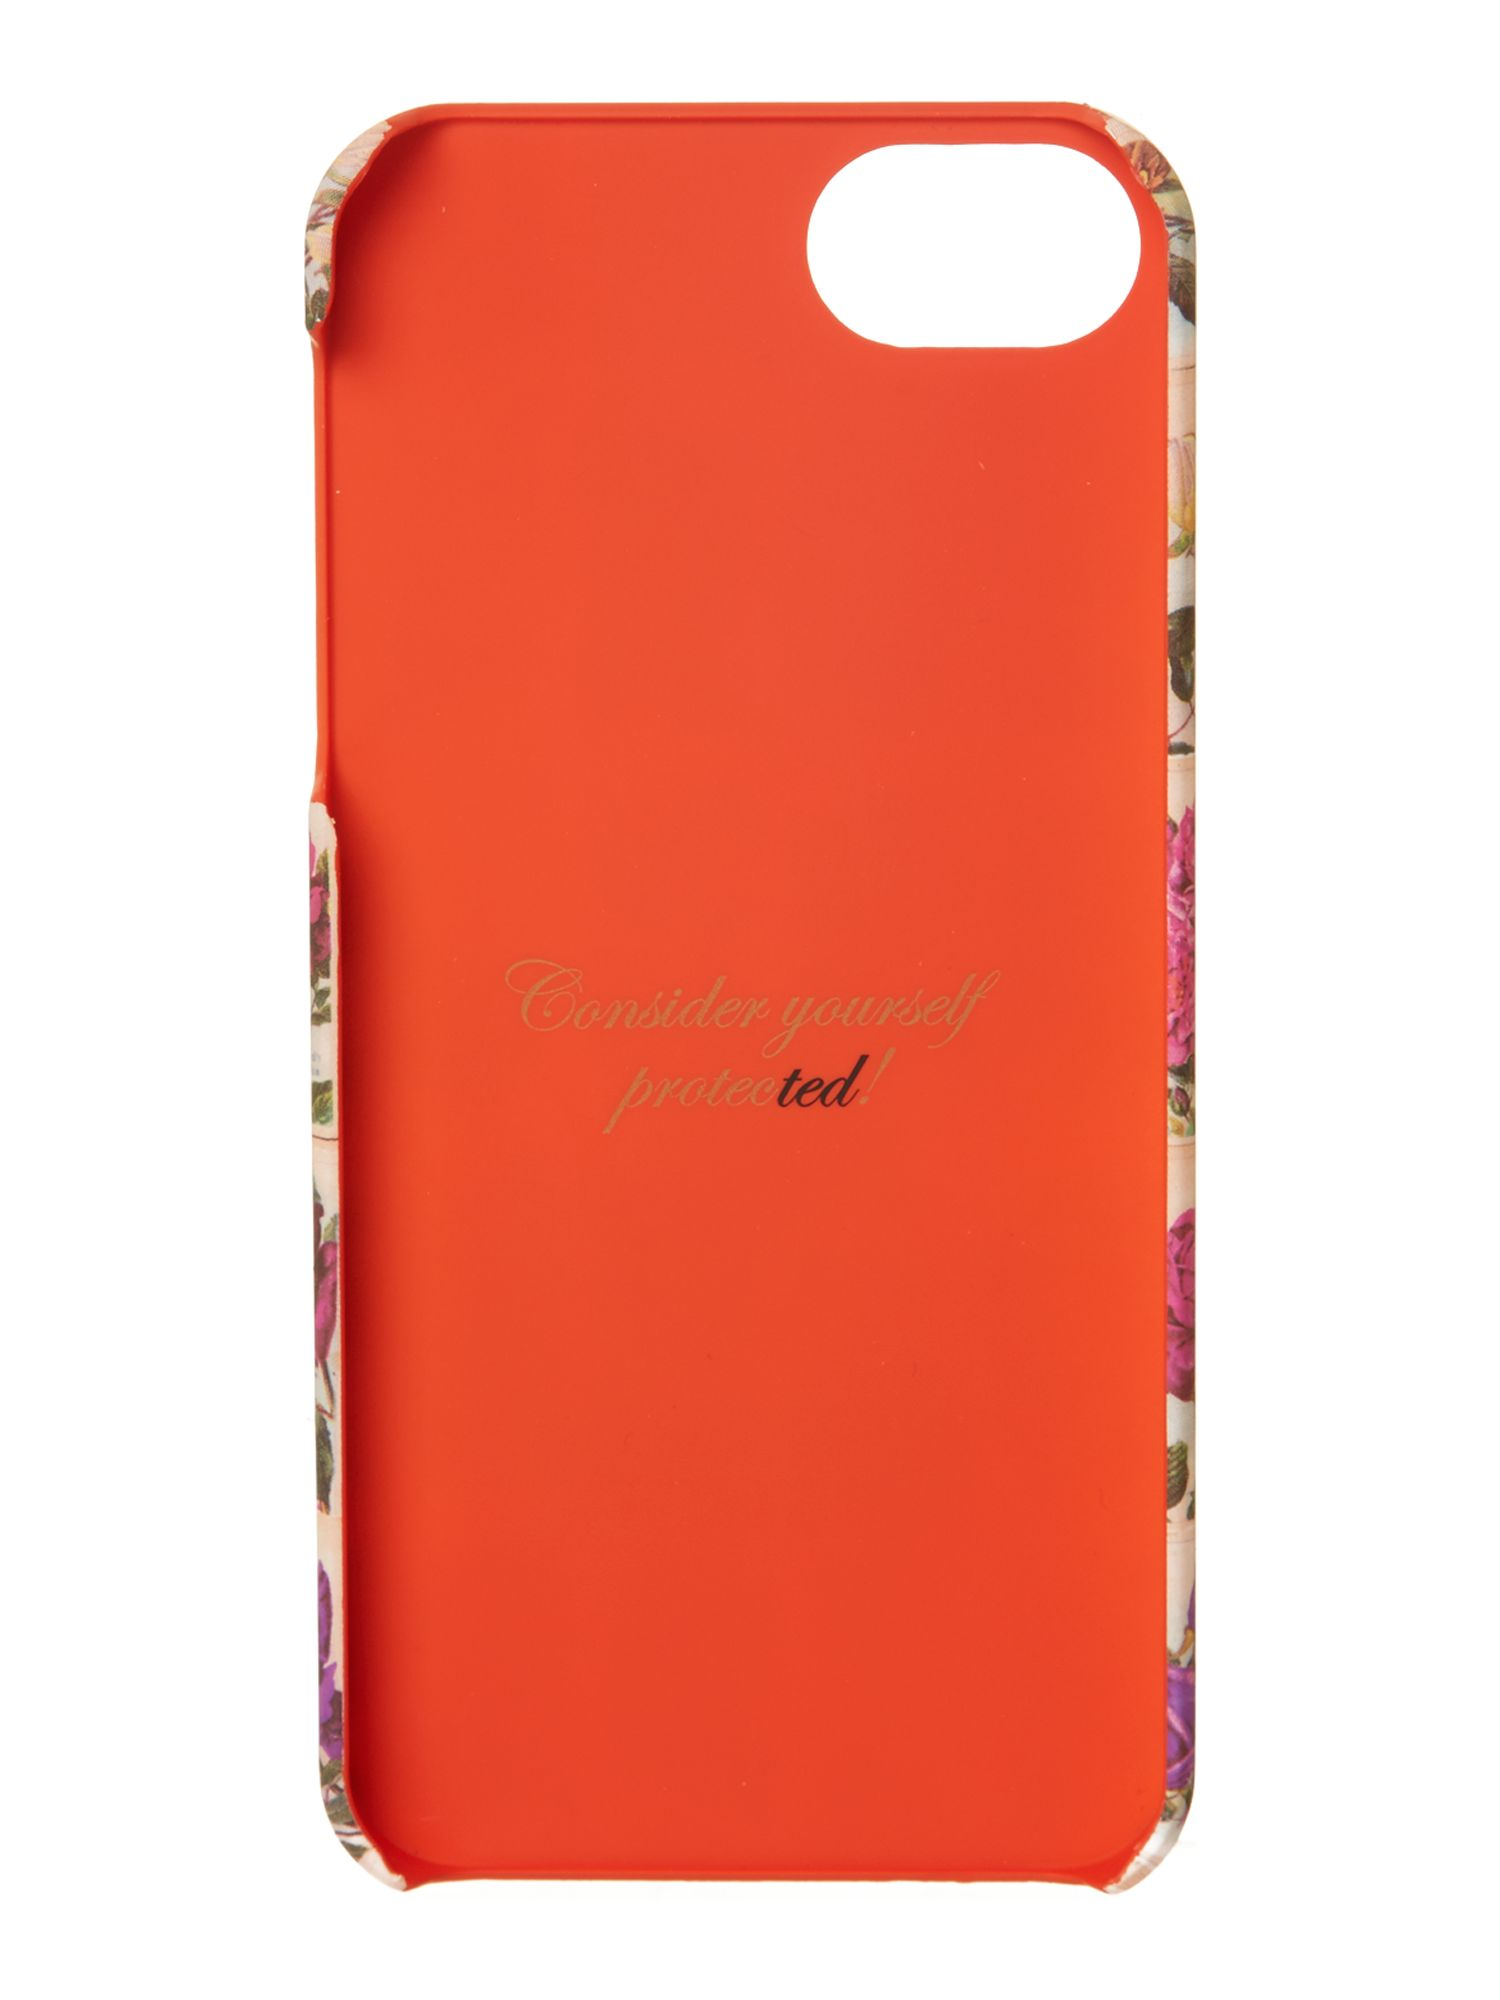 Multi-coloured hard phone case